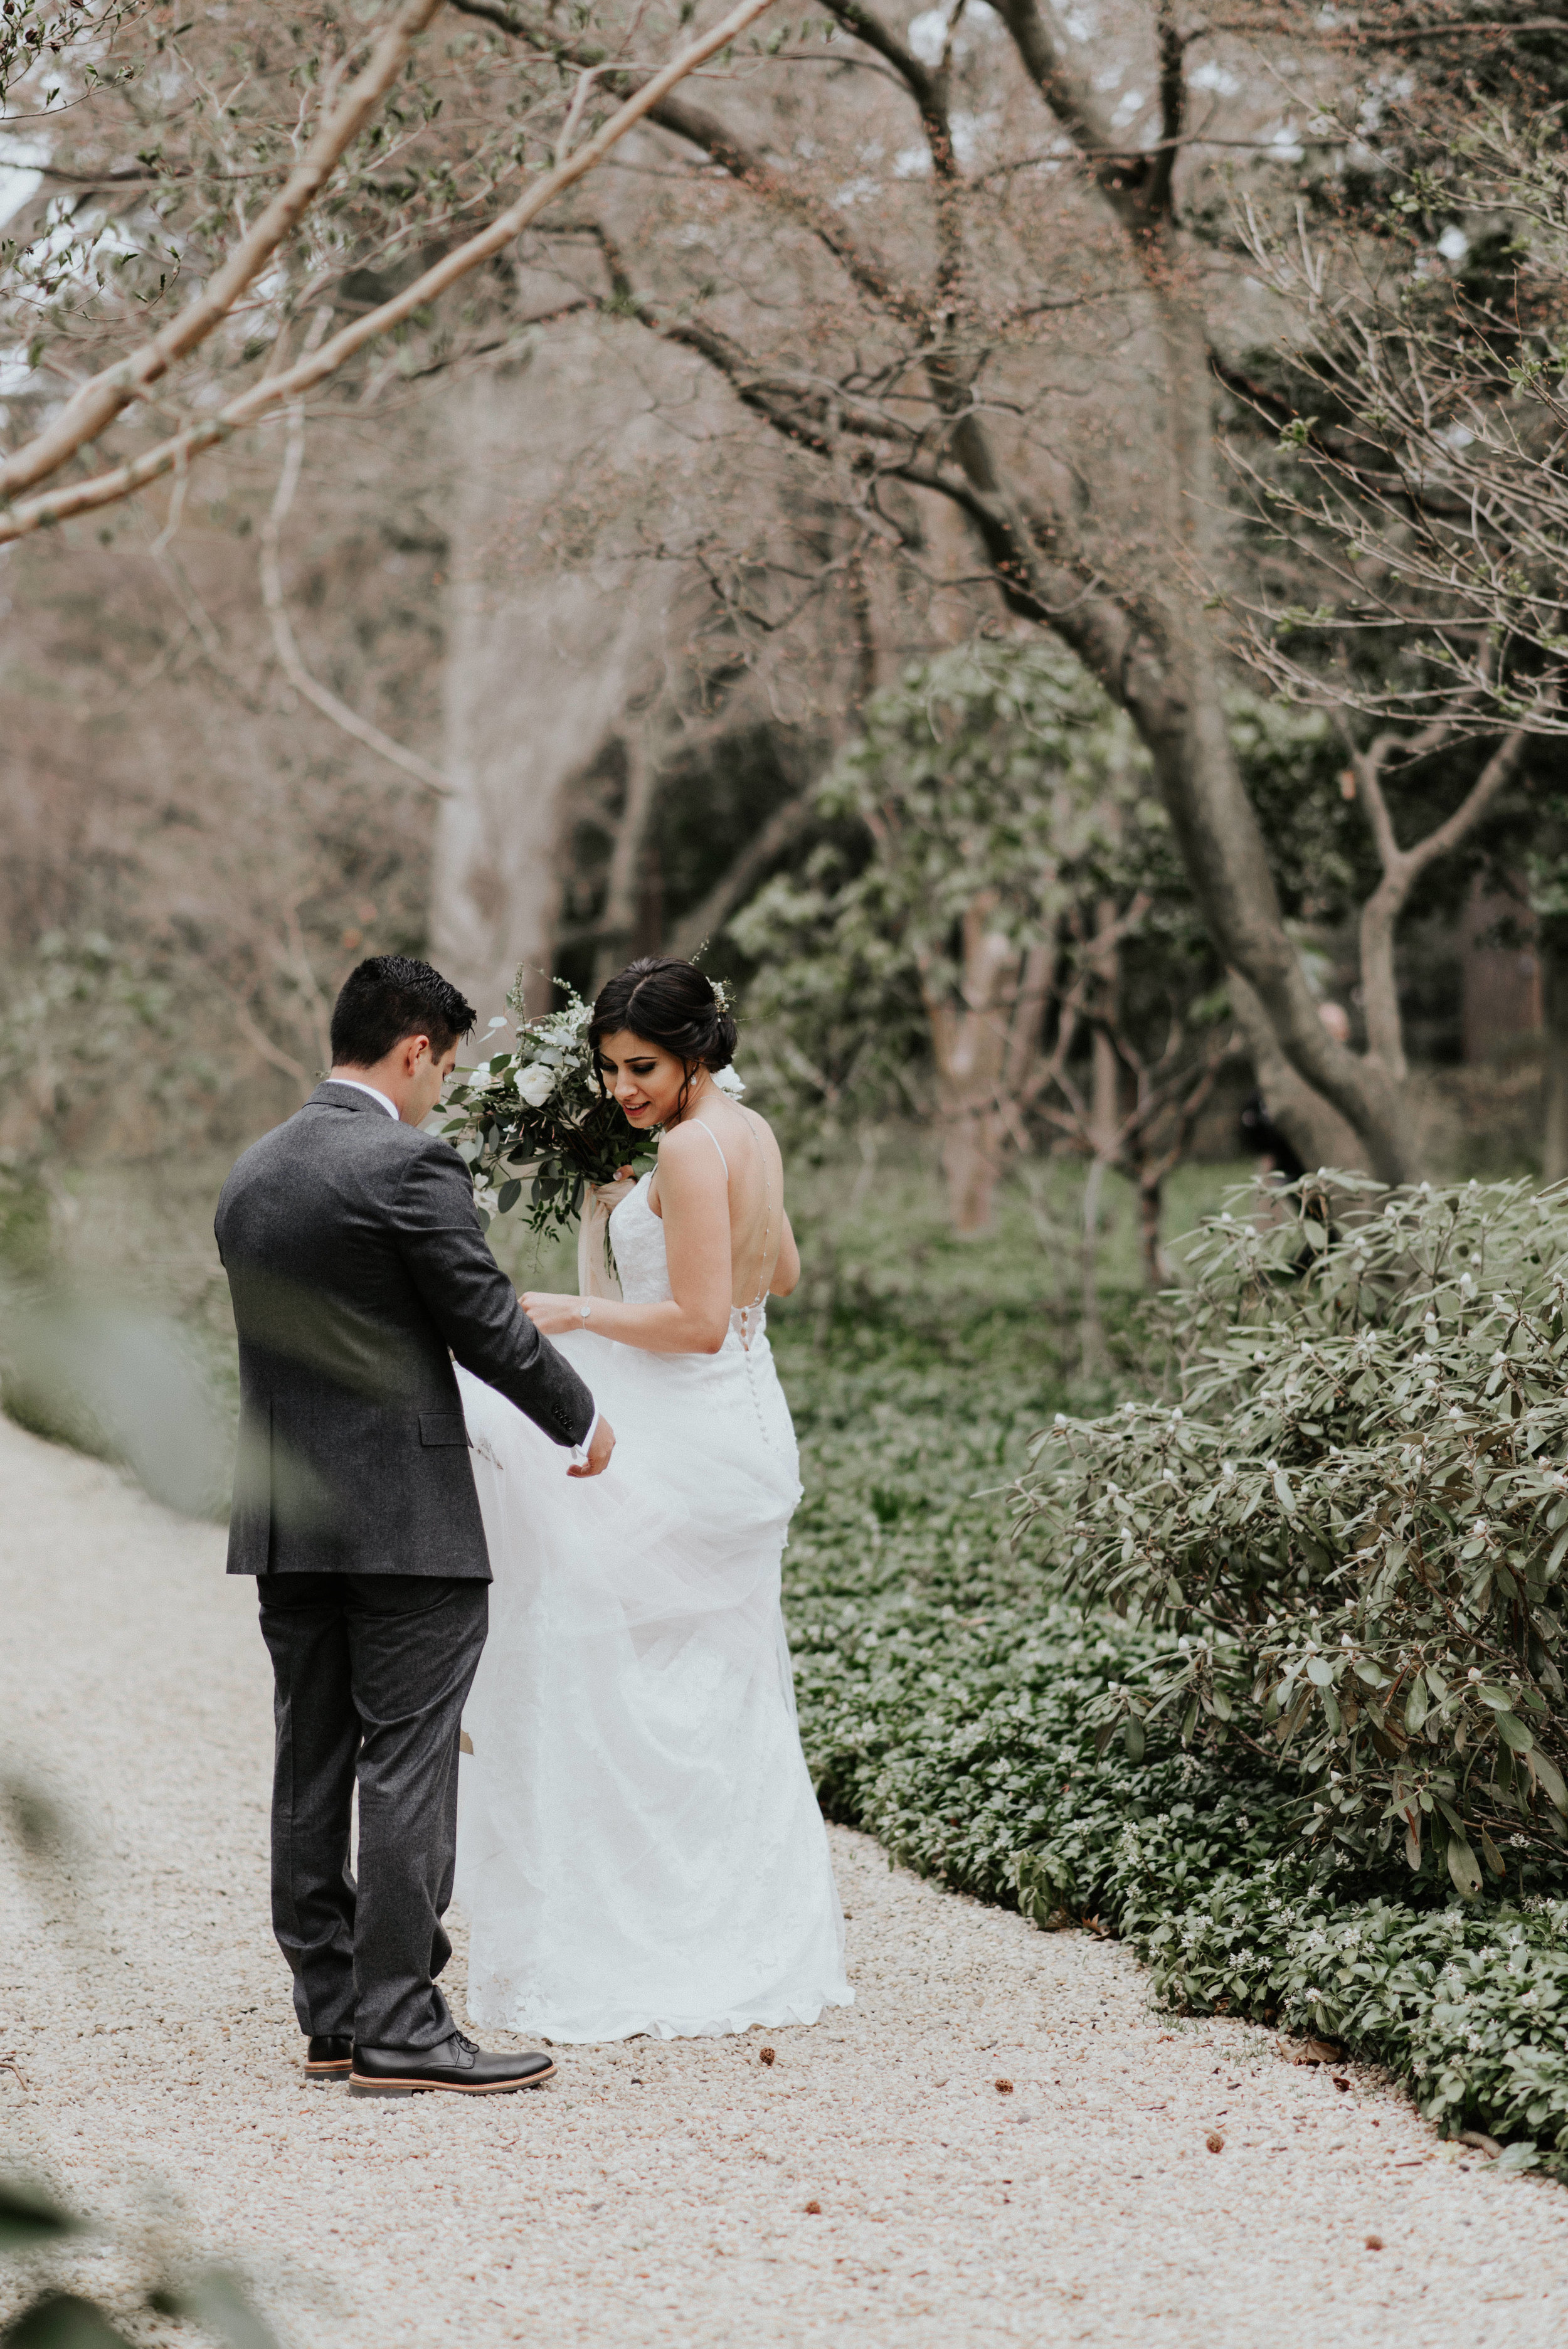 Bloss-Royalton at Roslyn Counttry Club-Planting Fields Arboretum-Long Island-Wedding-Photographer-01131.jpg